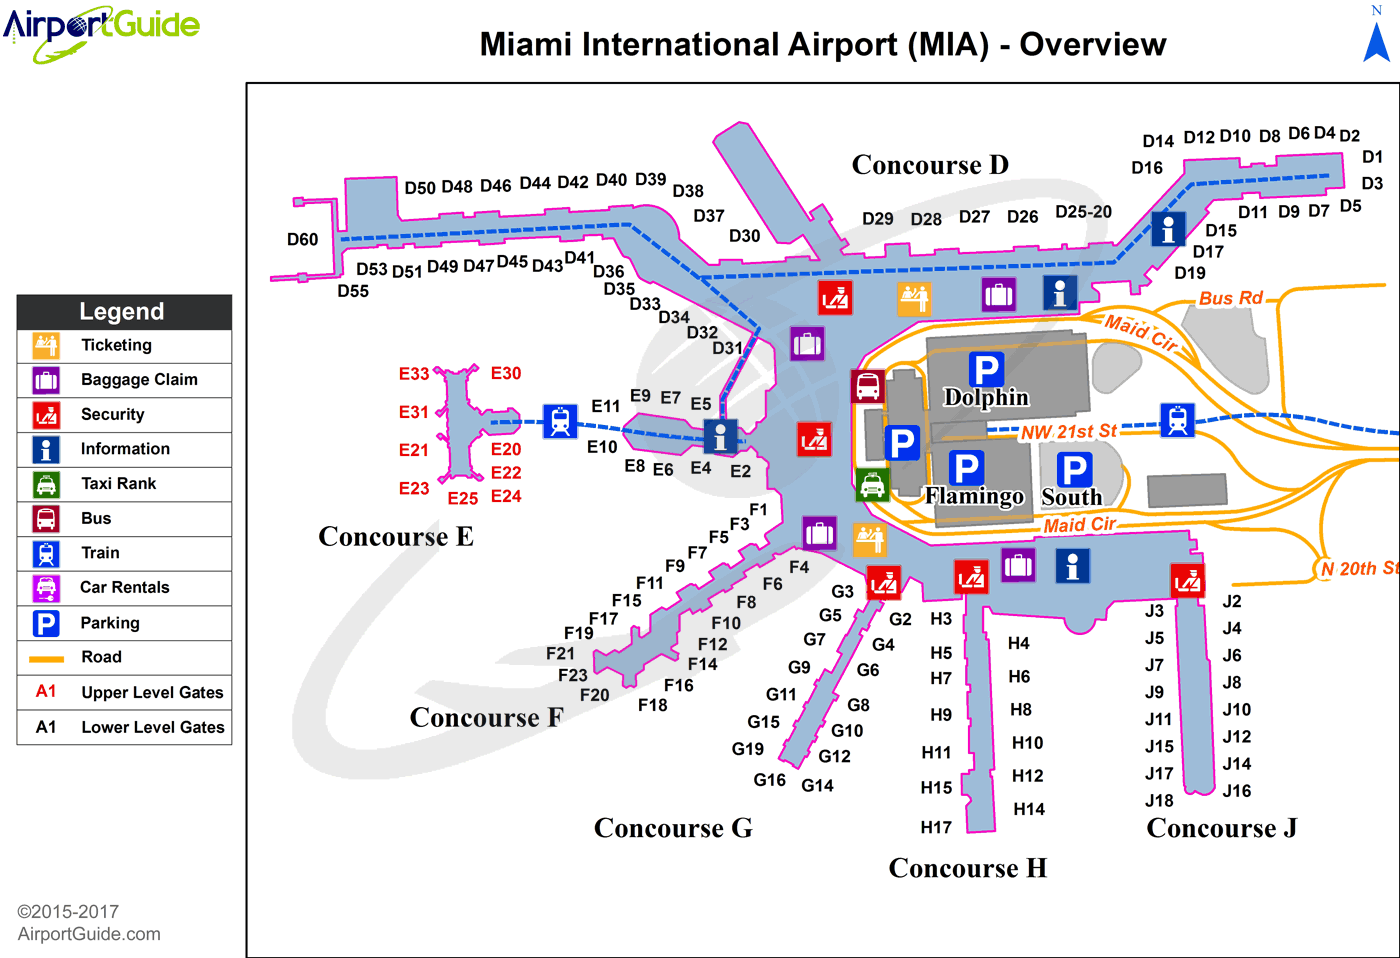 Miami International Airport Terminal Map Miami   Miami International (MIA) Airport Terminal Map   Overview  Miami International Airport Terminal Map